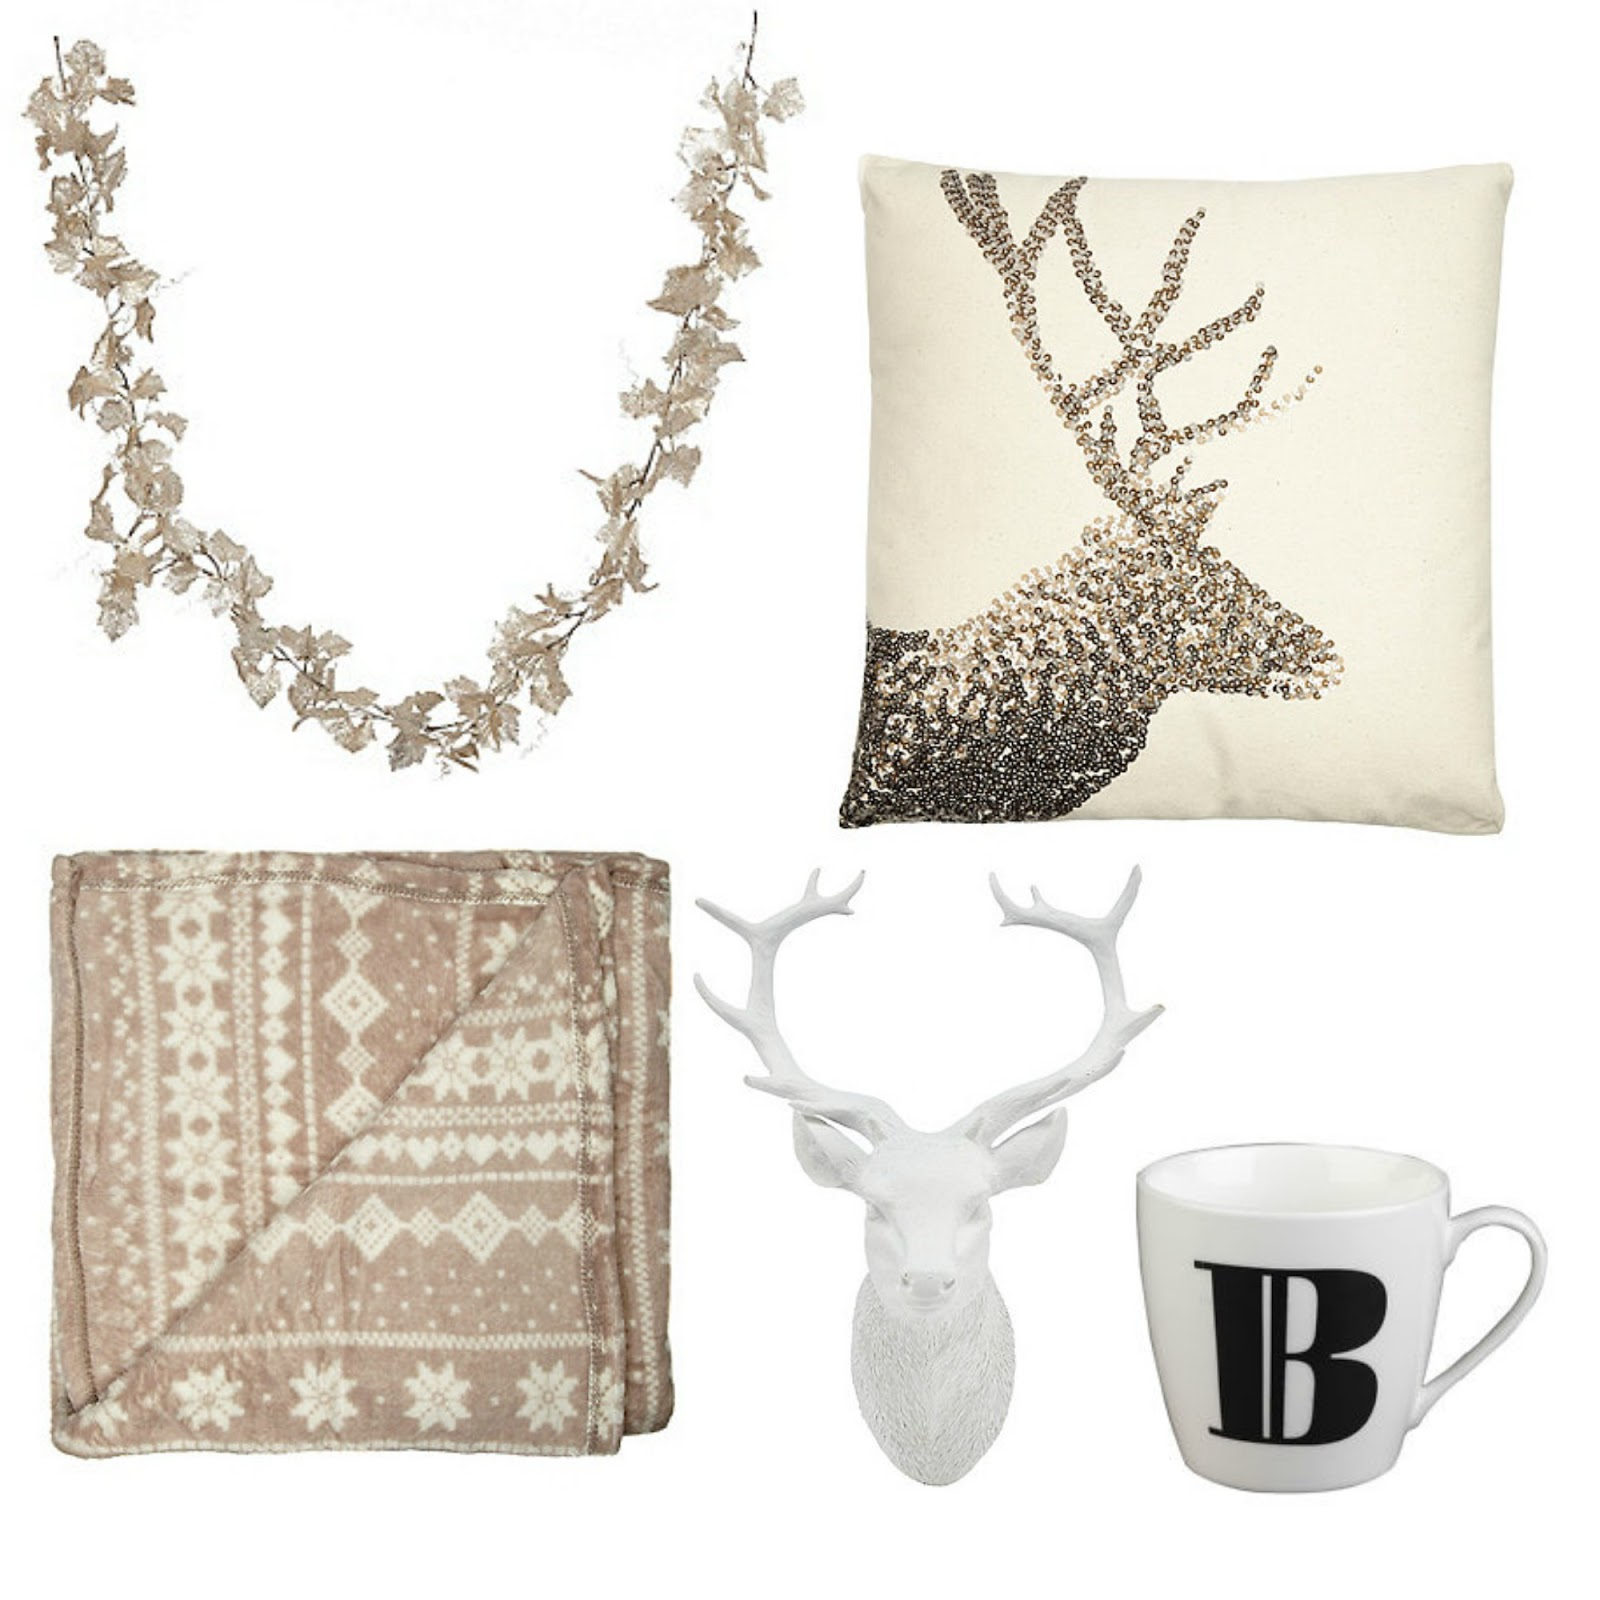 mamasVIB | V. I. BUYS: 5 Fast Ways... to style up your front room this Christmas, christmas decorations, debenhams christmas shop, debenhams, interiors, styling, christmas decorating, simple tricks to dress up front room, living room style, christmas decs, xmas rooms, shopping, room makeover, simple makeover